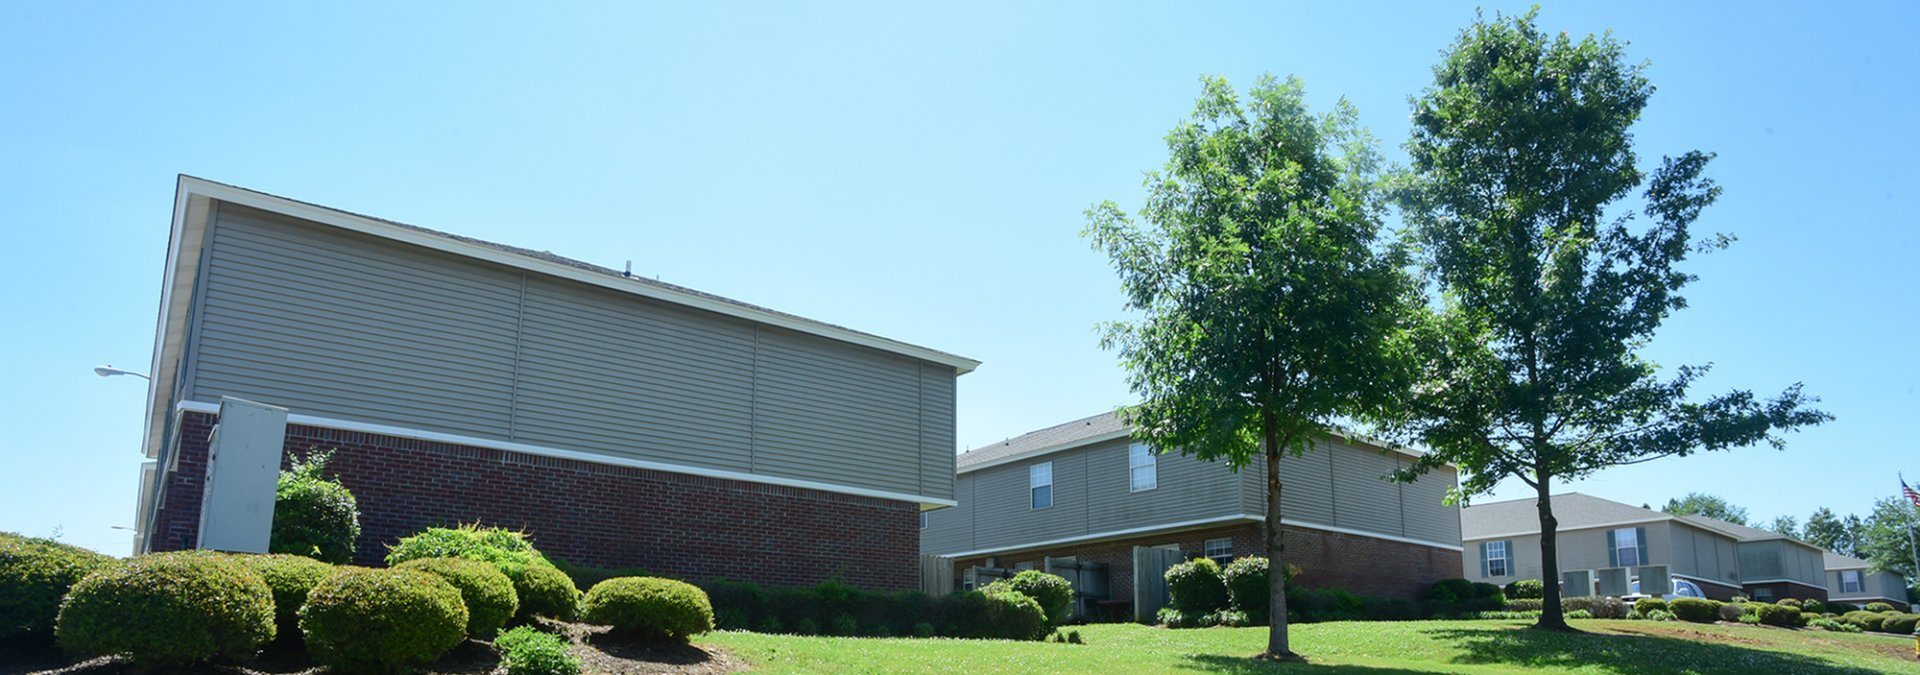 Apartments In Starkville MS Near MSU | The Block Townhomes